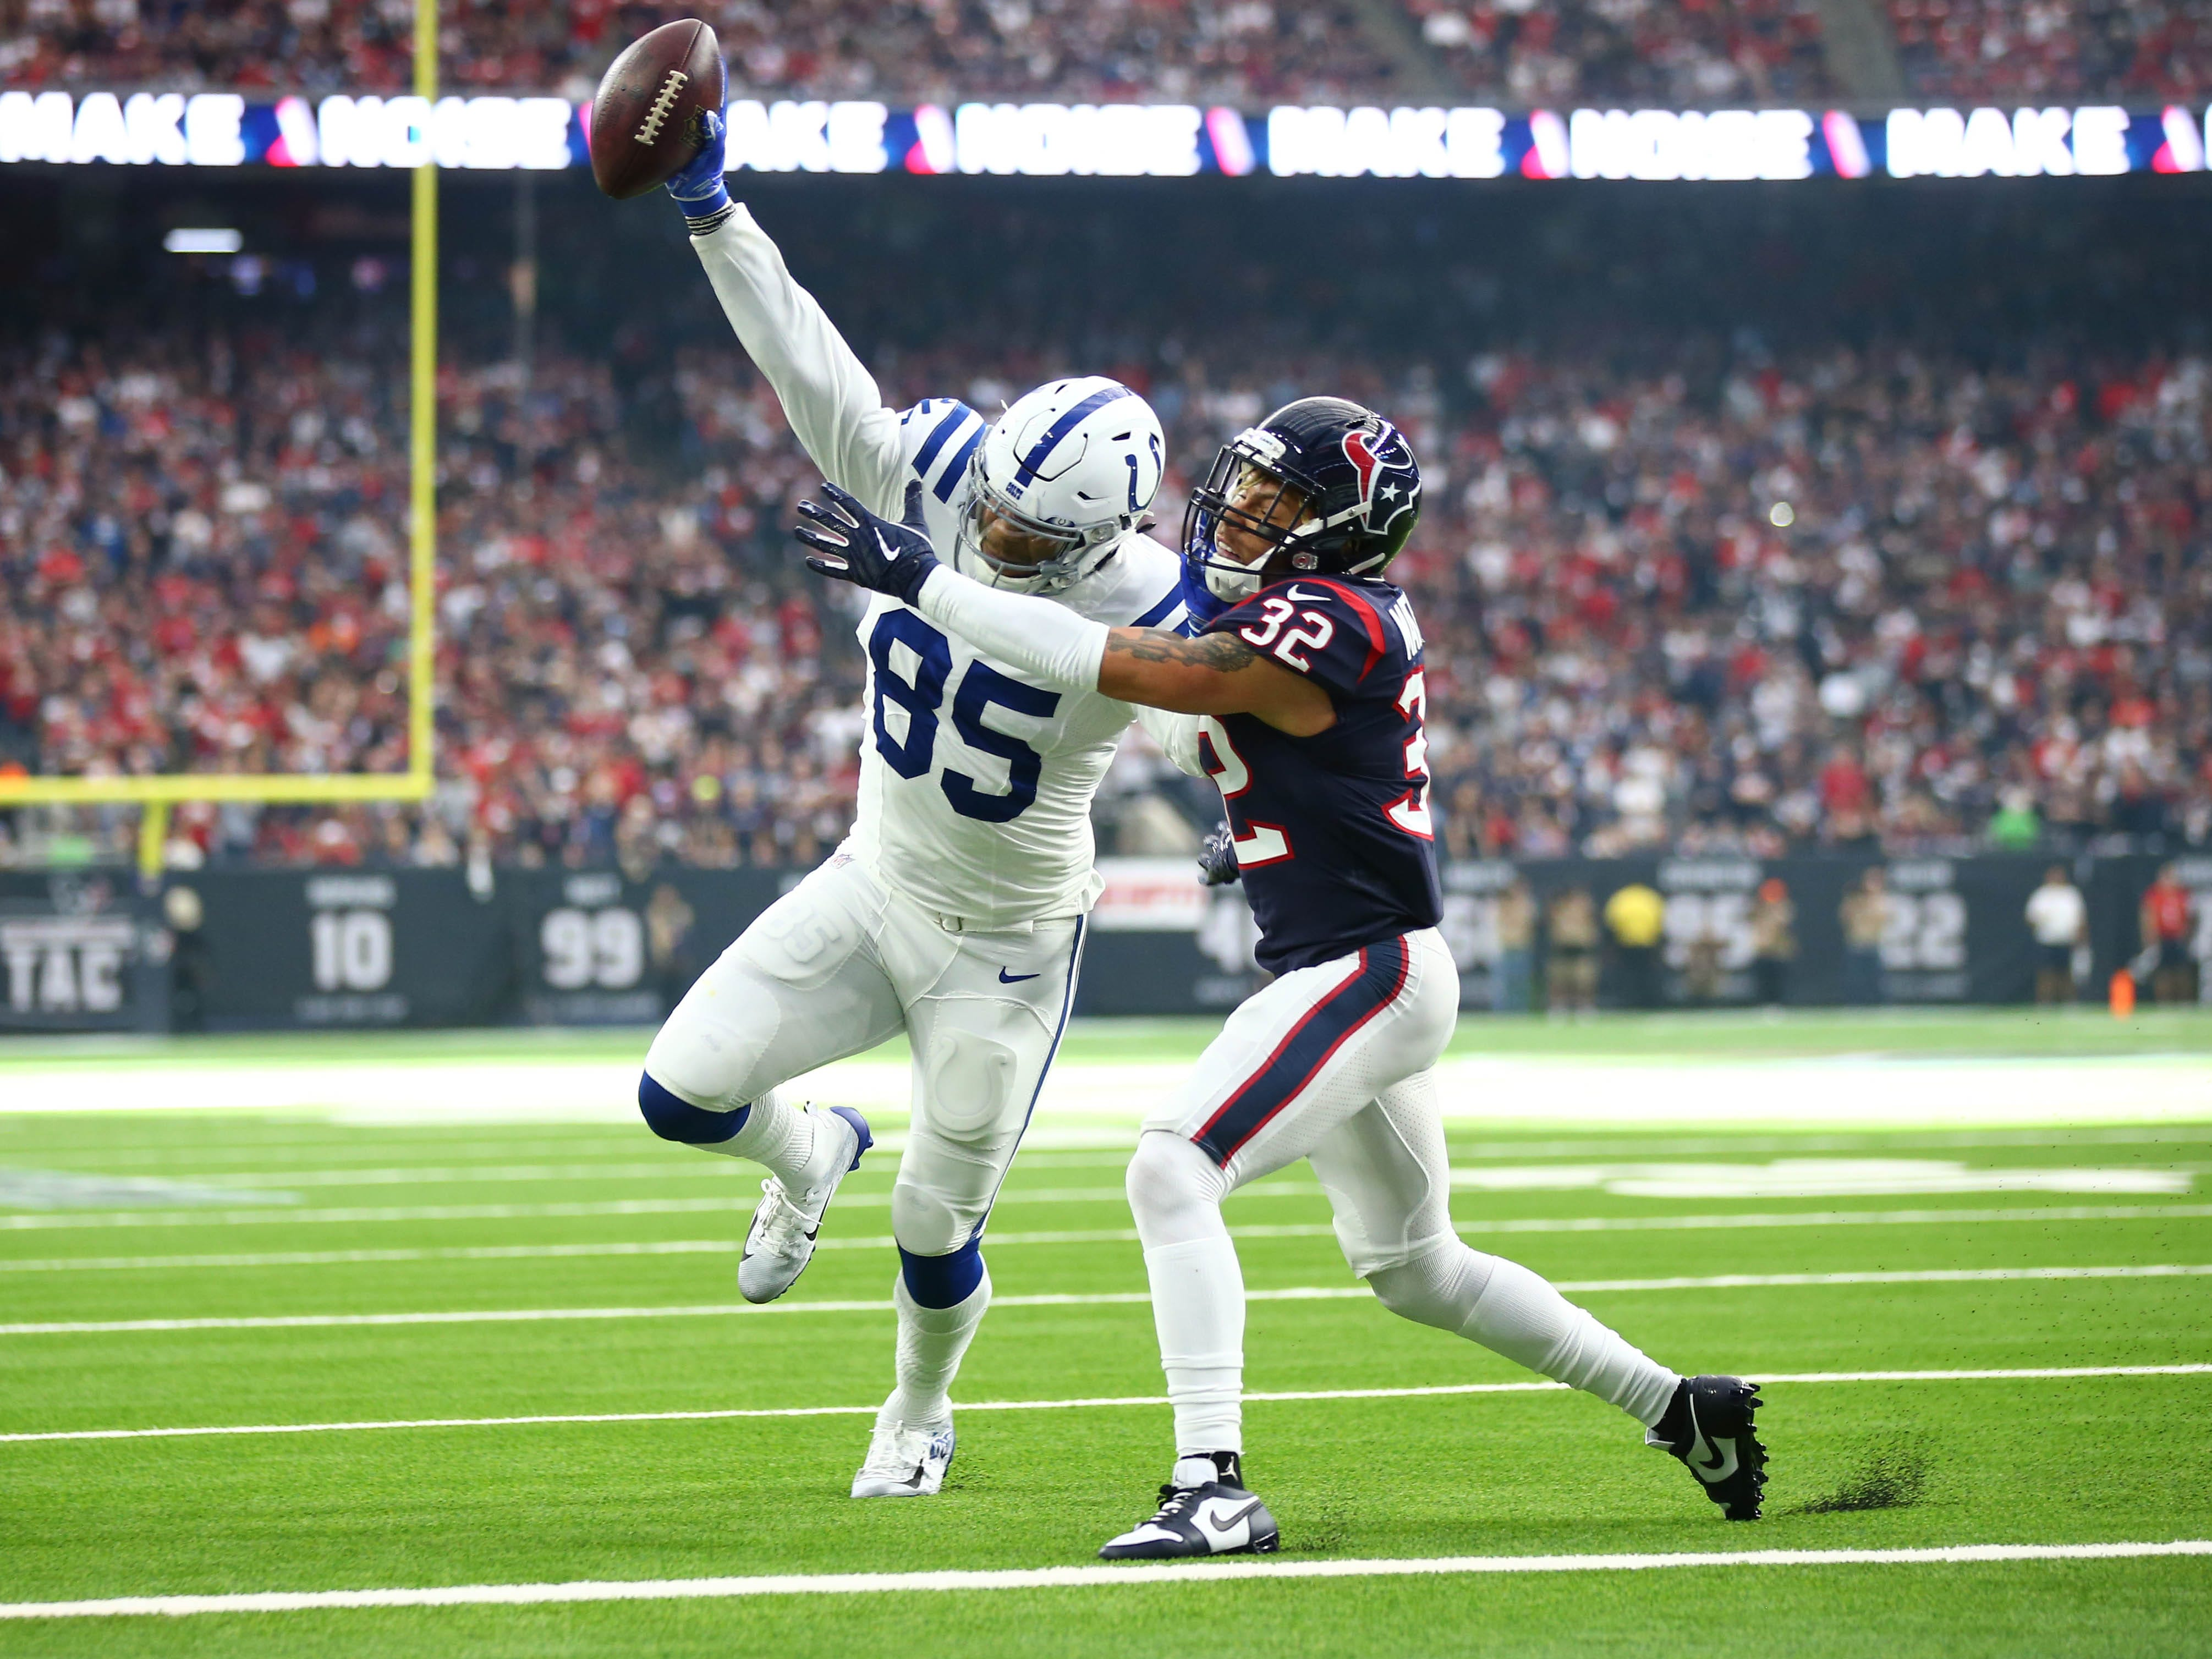 Indianapolis Colts tight end Eric Ebron (85) scores a touchdown past Houston Texans free safety Tyrann Mathieu (32) in the first quarter in a AFC Wild Card playoff football game at NRG Stadium.